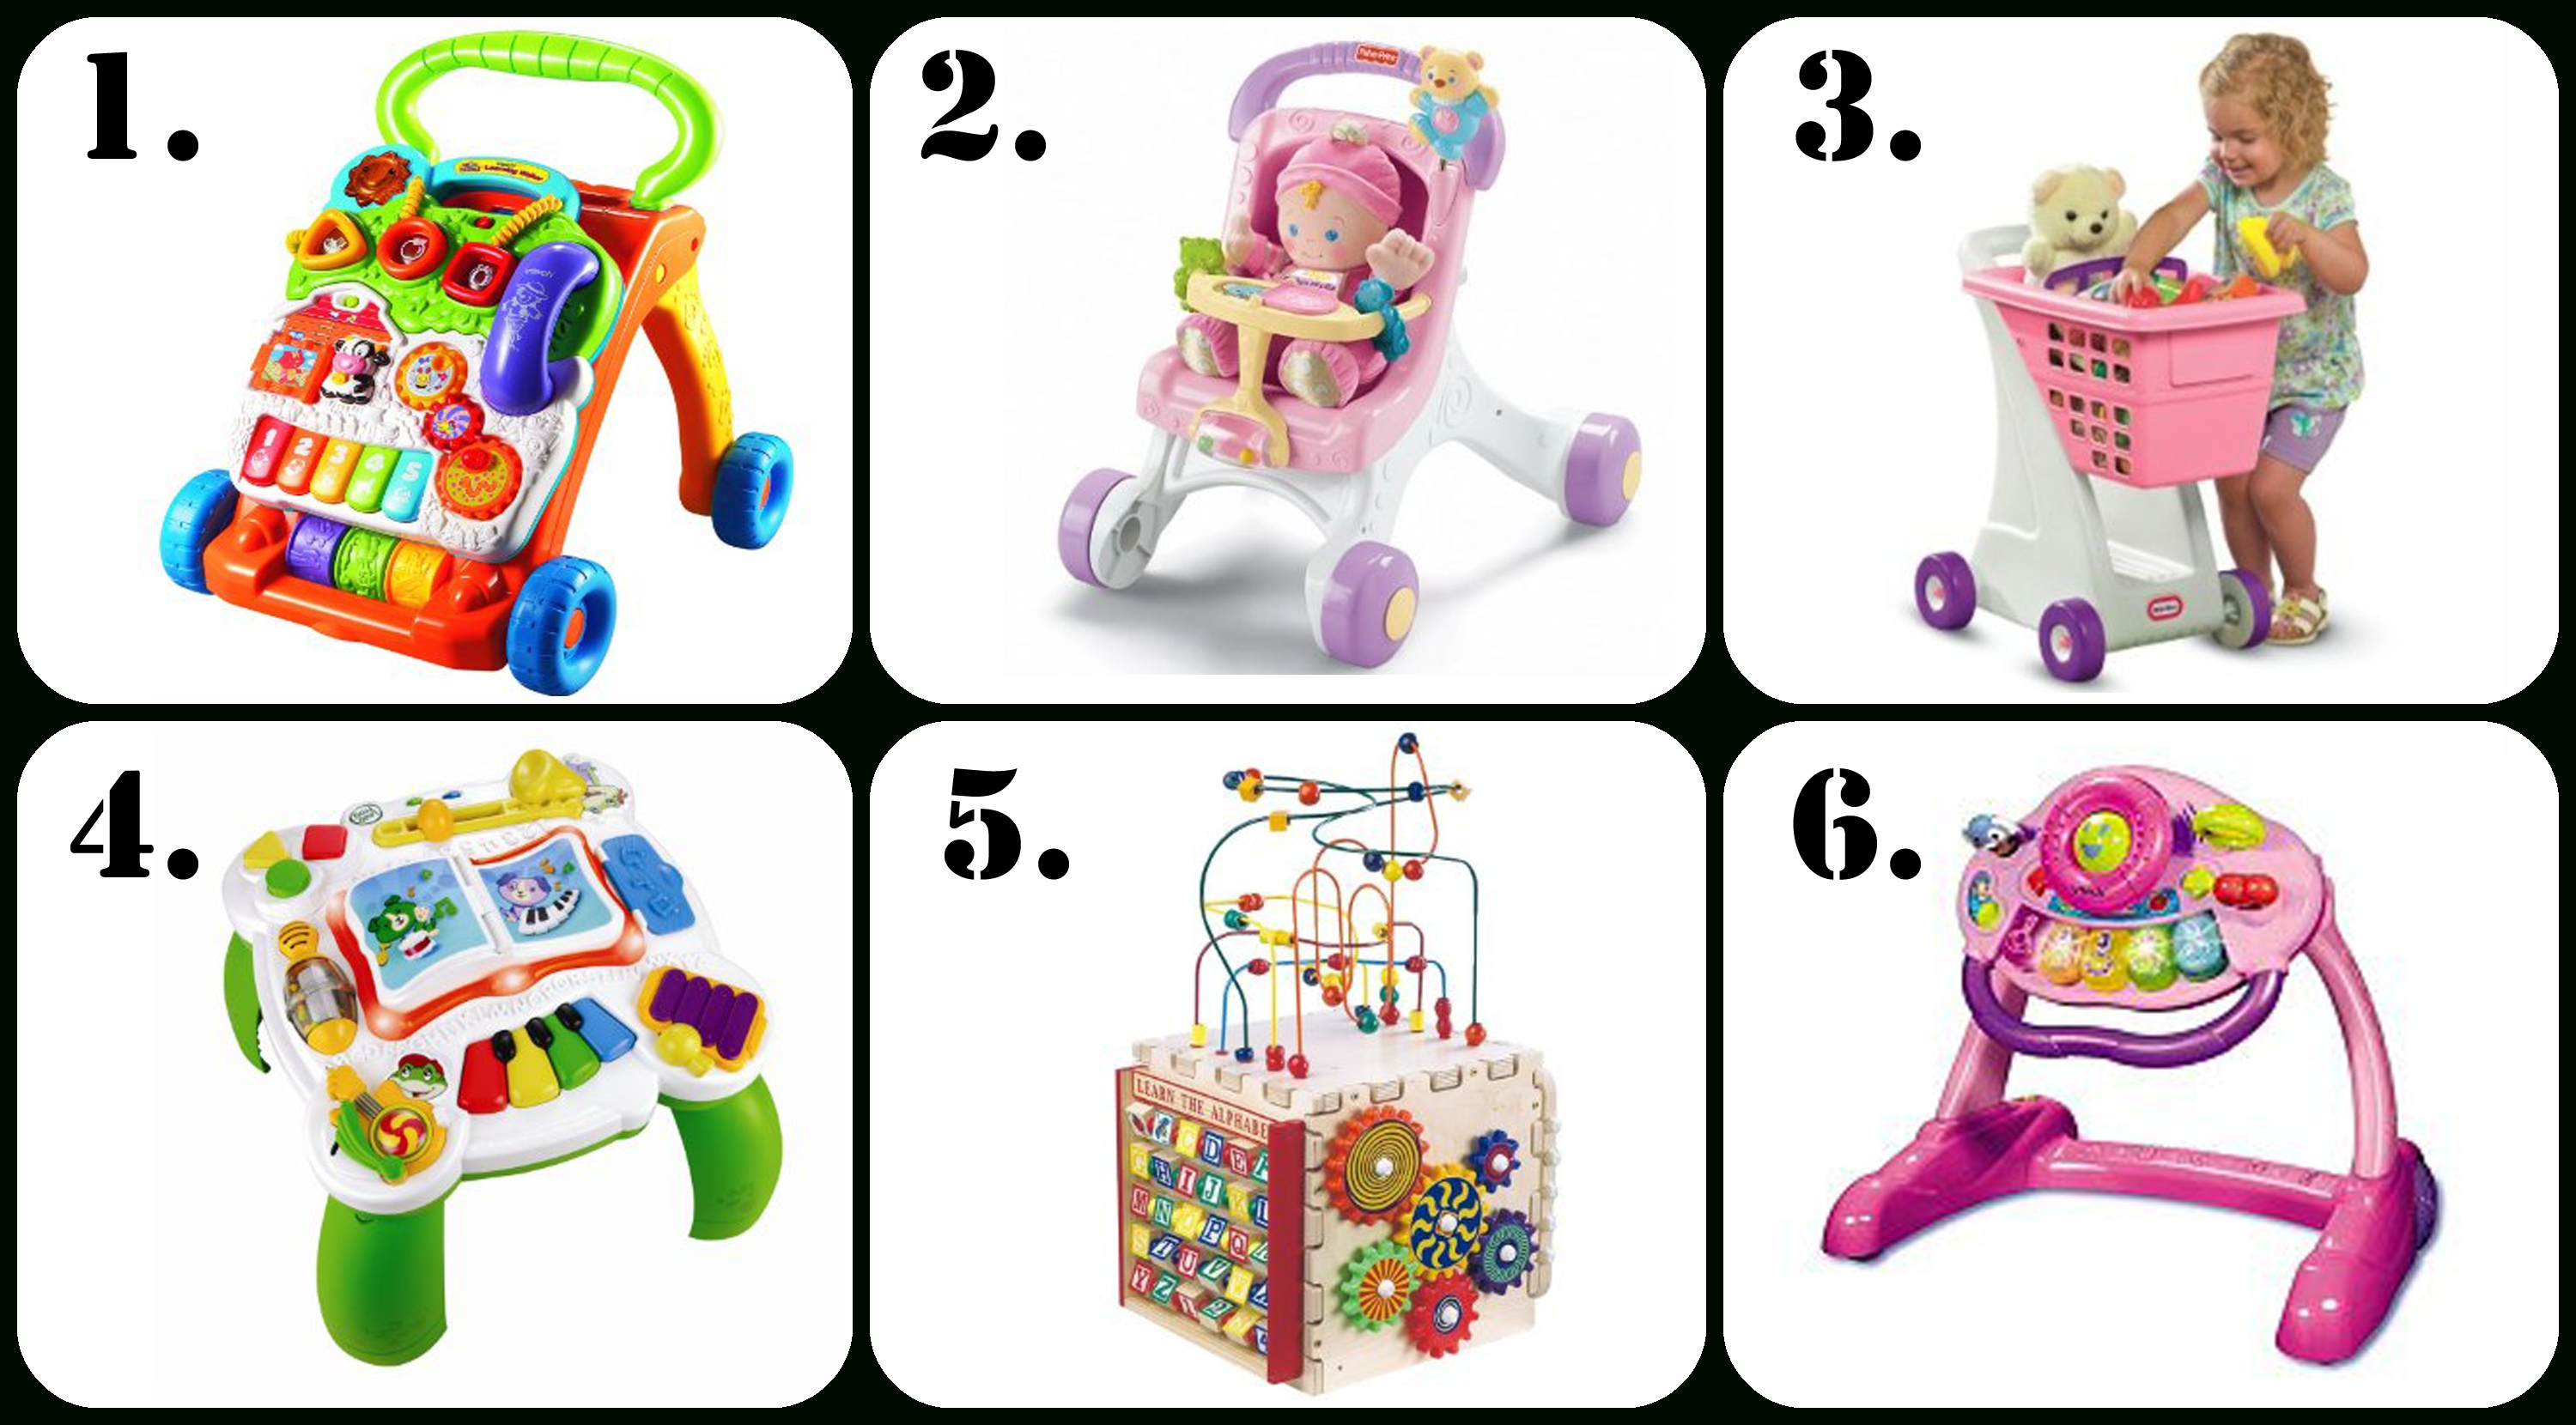 10 Best Gift Ideas For 1 Year Old Girl the ultimate gift list for a 1 year old girl e280a2 the pinning mama 1 2020